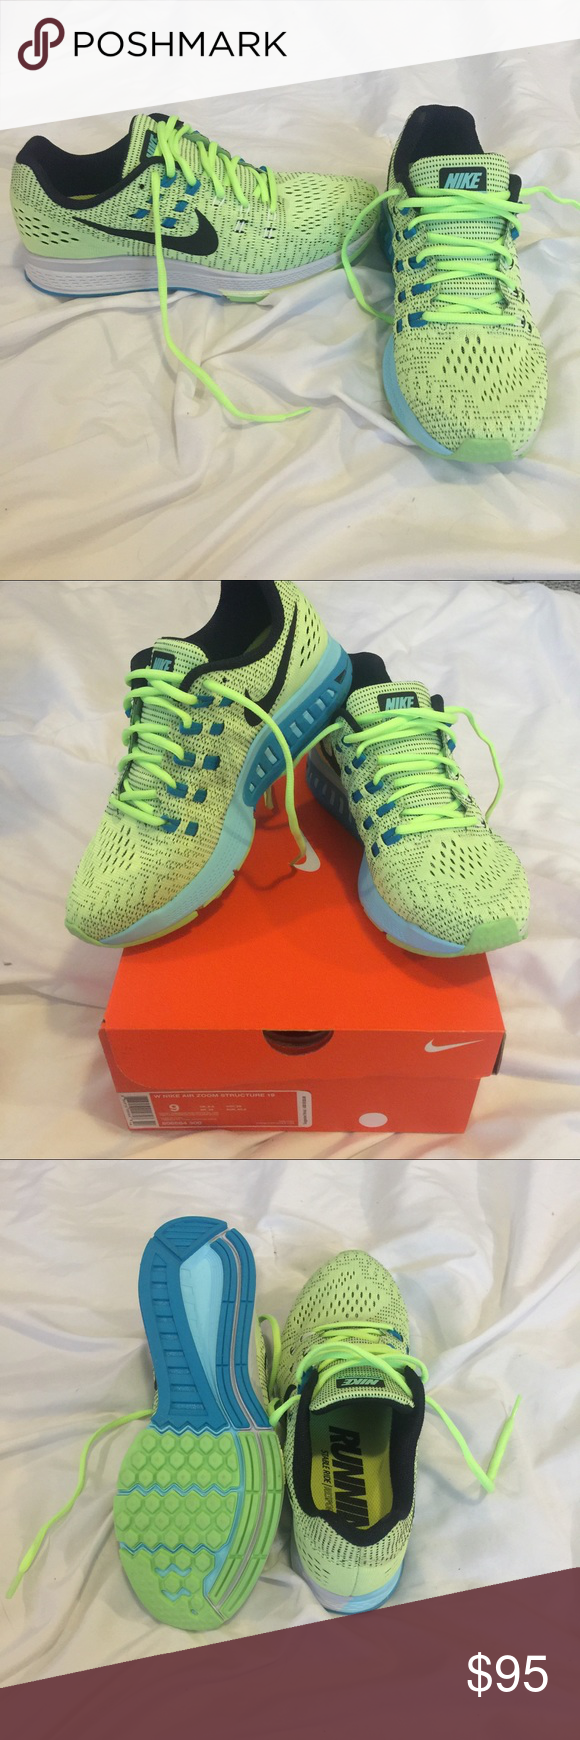 fad99e040187 NEW with tags Nike air zoom shoes. Women s size 9 Brand new with tags